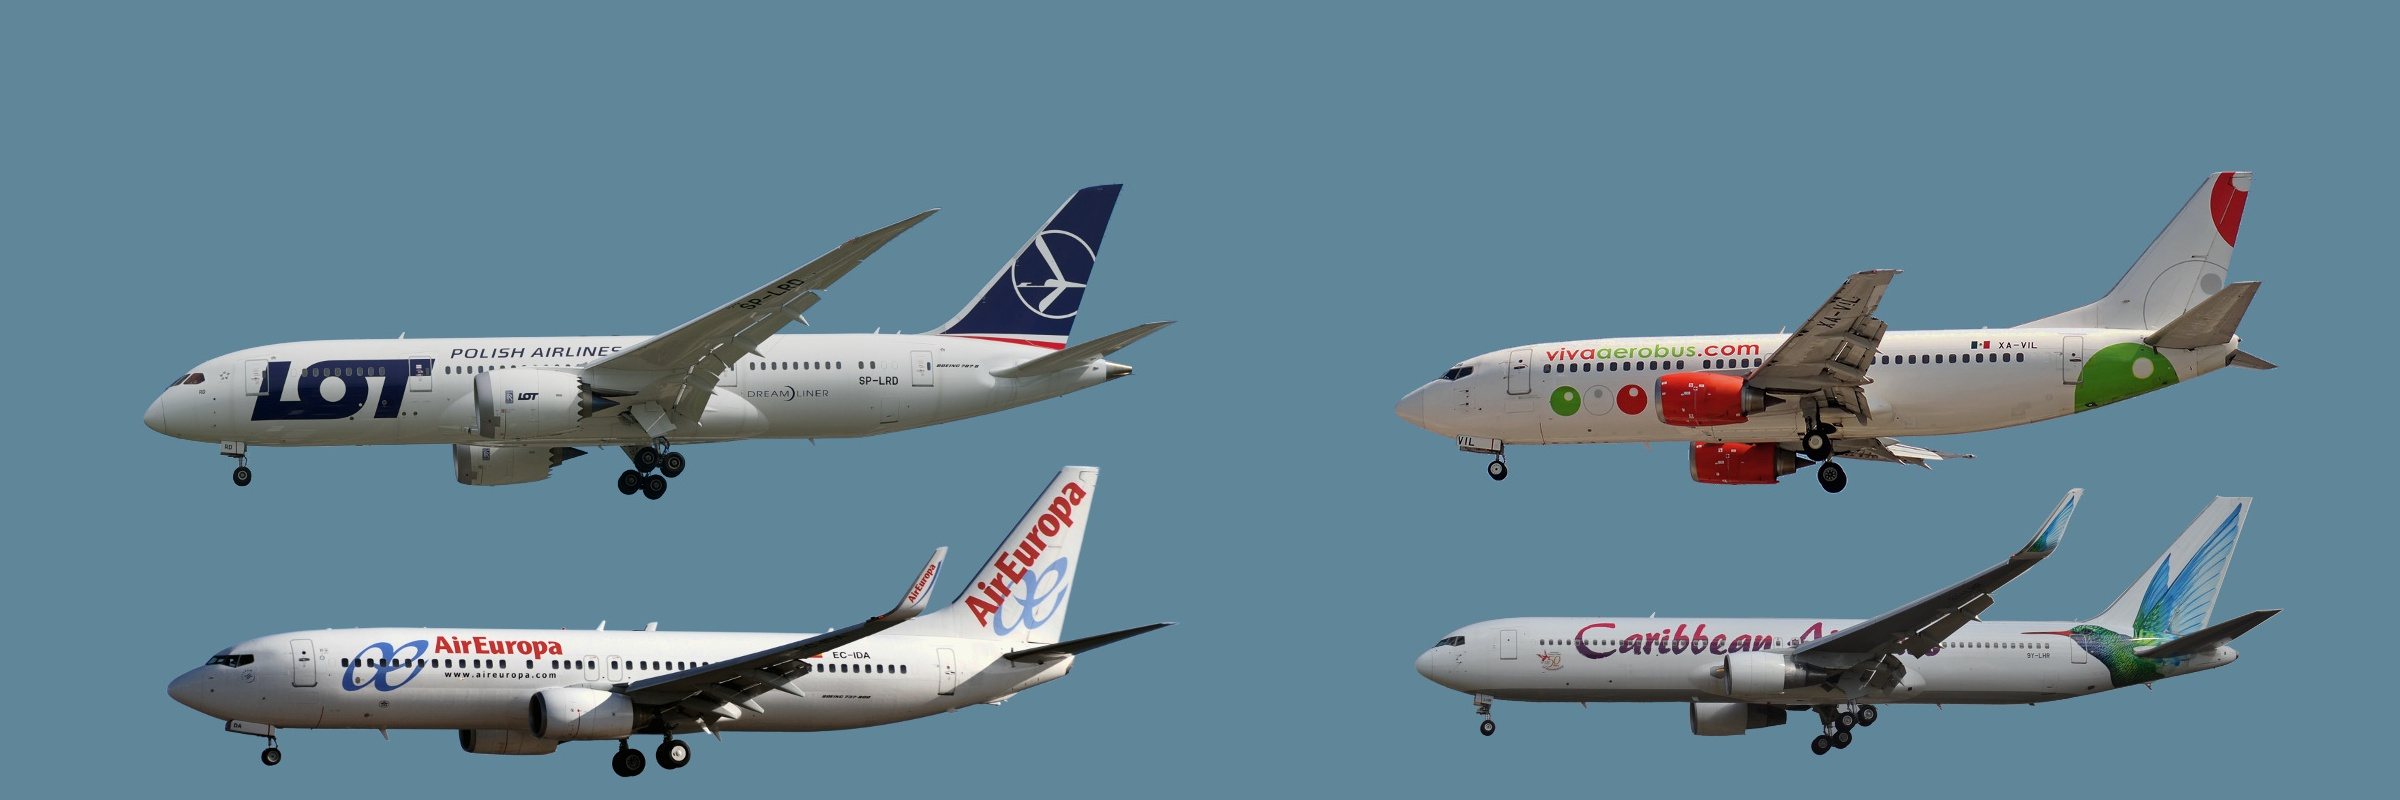 Customers: Air Europa, LOT Polish Airlines, and VivaAerobus